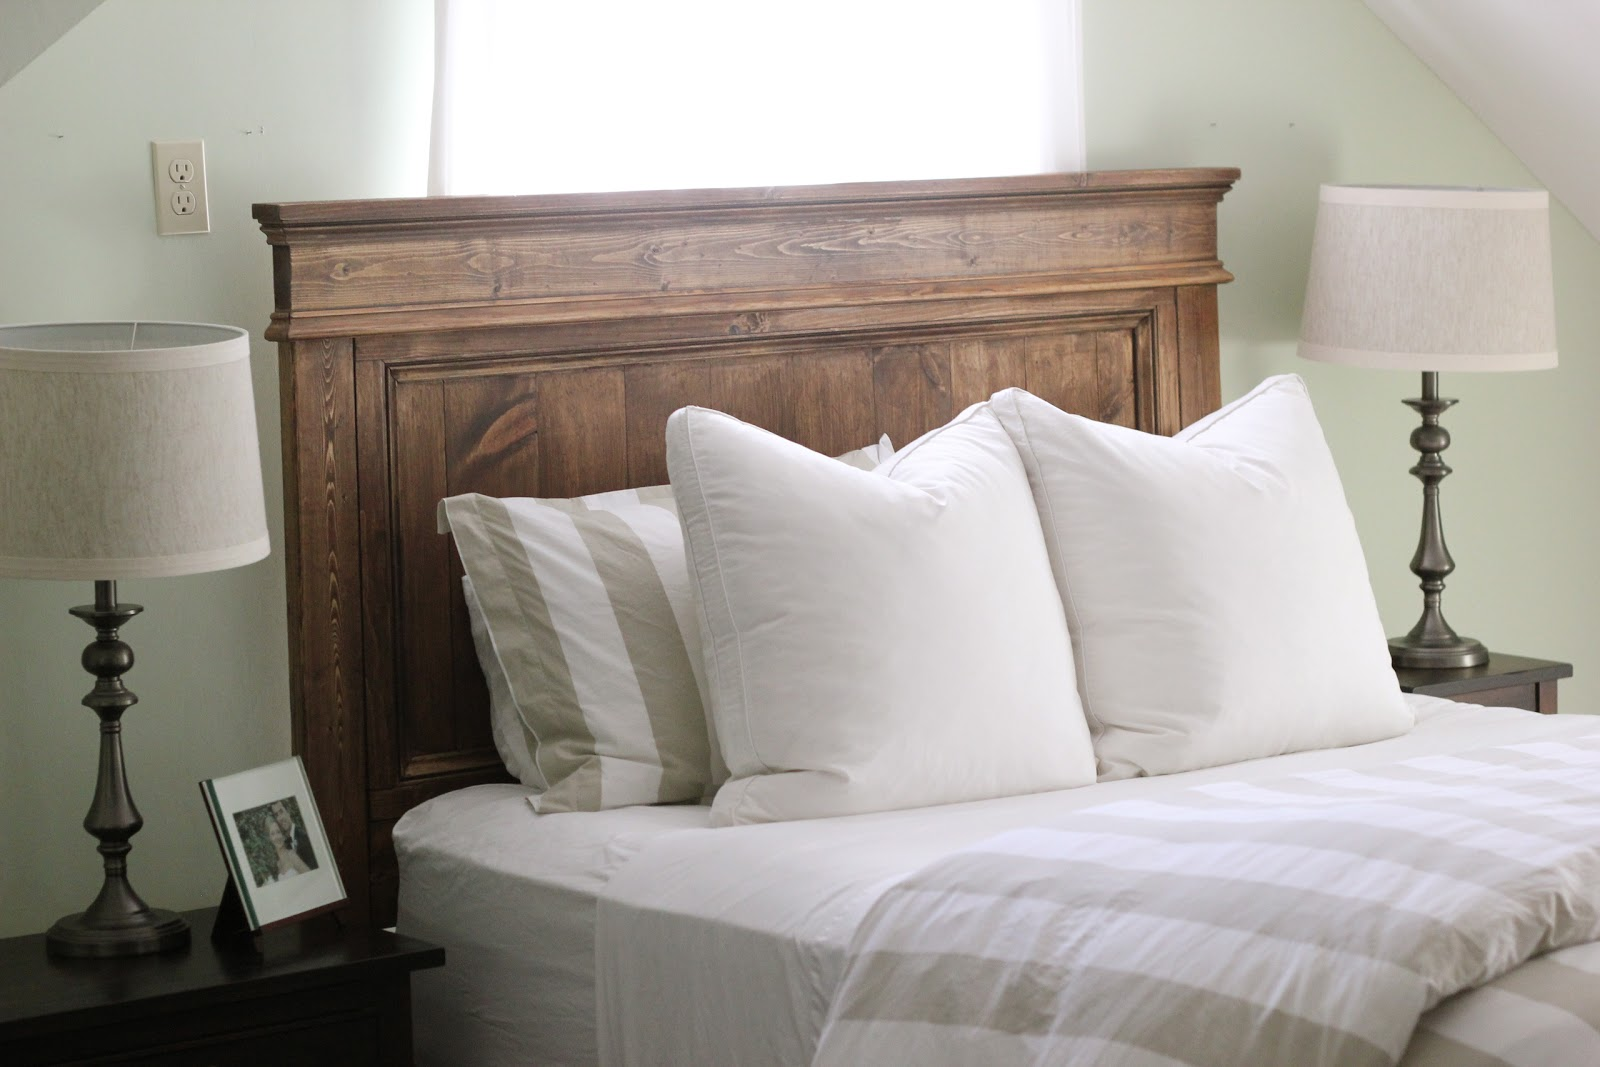 we built a bed diy wooden headboard - Make A Headboard For Your Bed